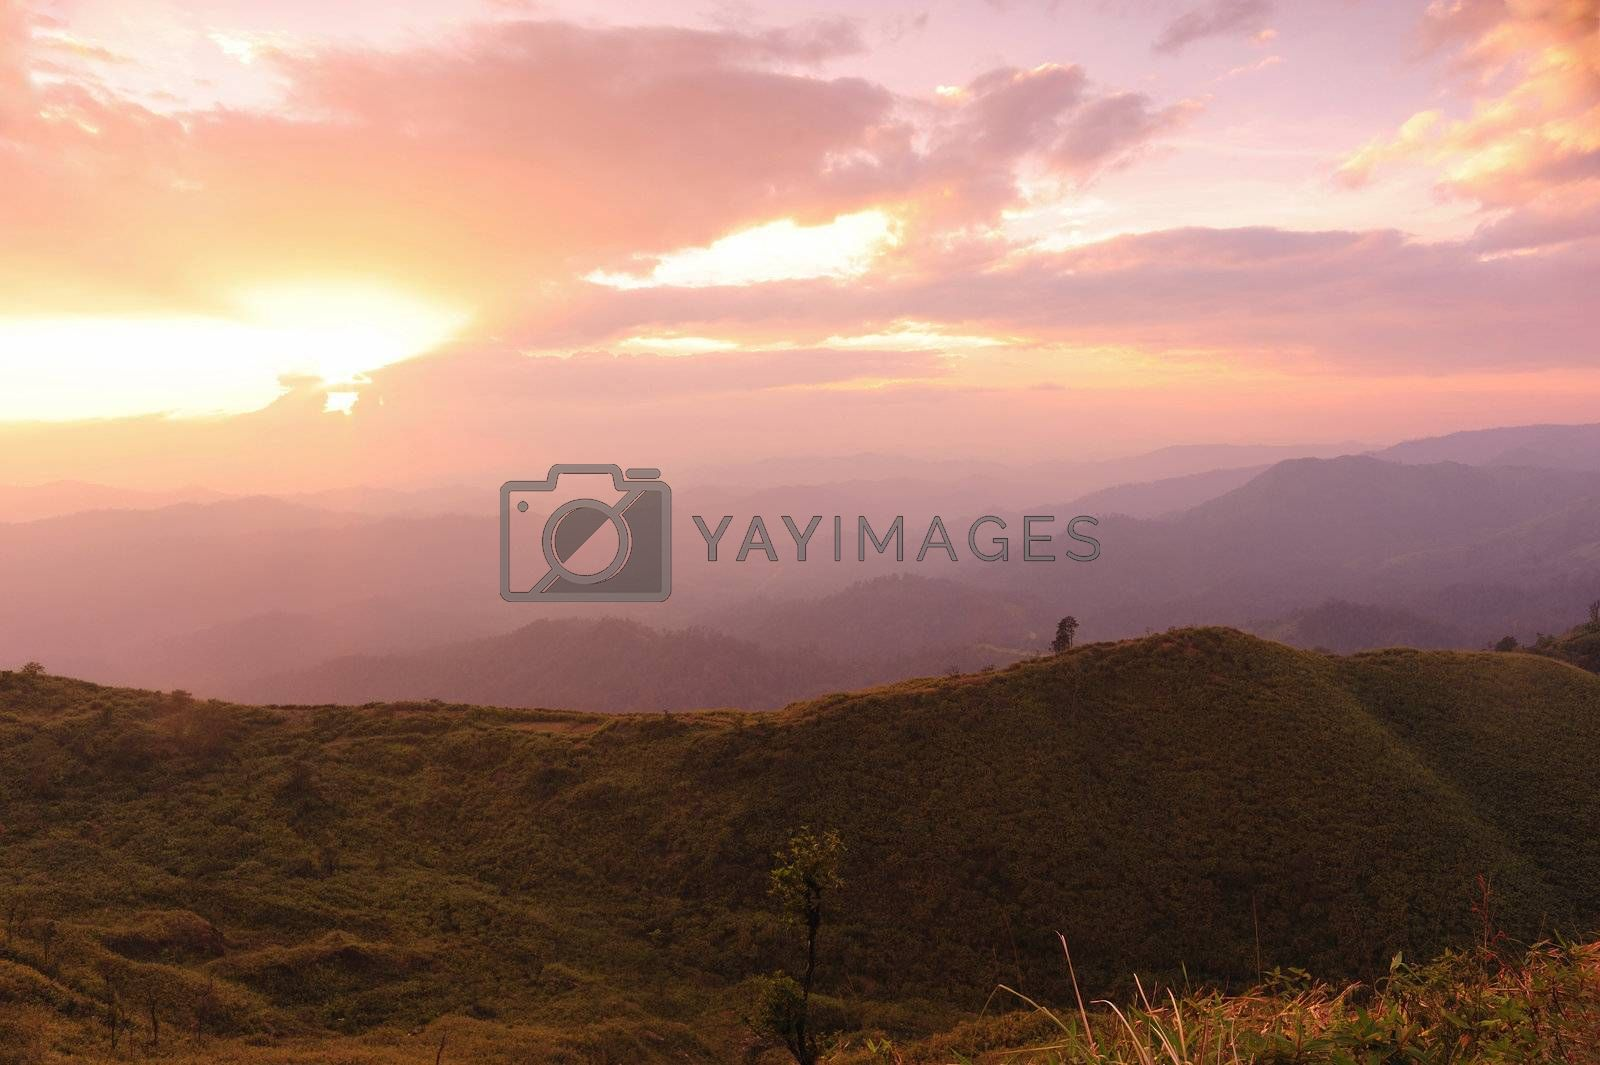 Nice sunset scene in mountains  by ngungfoto